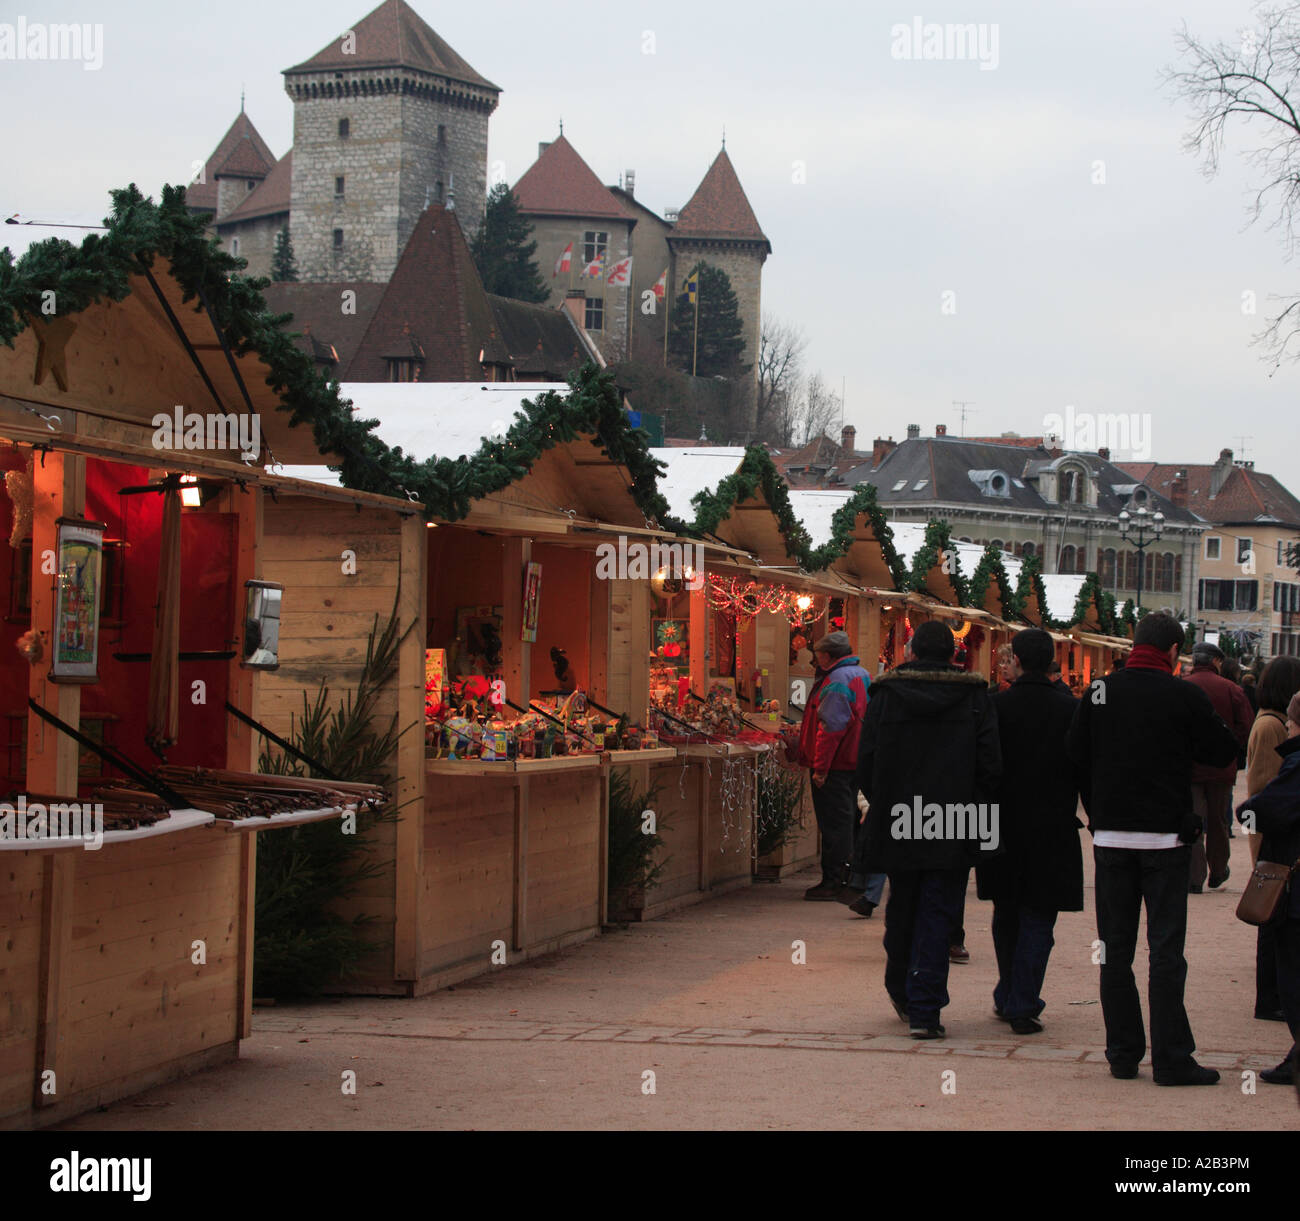 Annecy France Christmas Market 2020 Annecy France Europe euro christmas xmas market traders stall